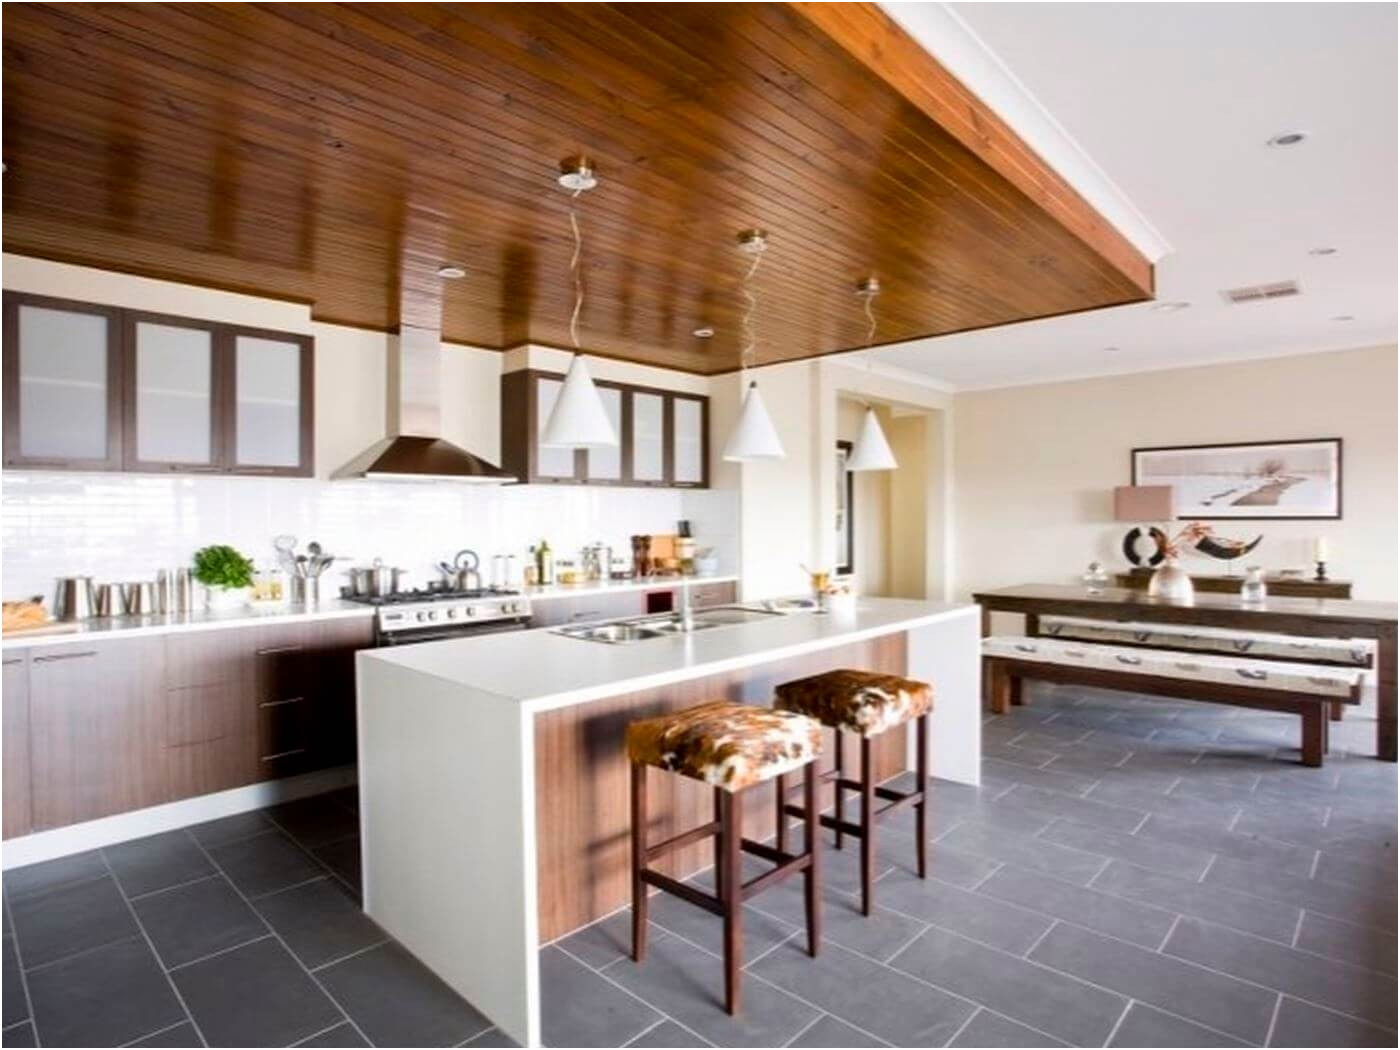 Layout Considerations In the Kitchen